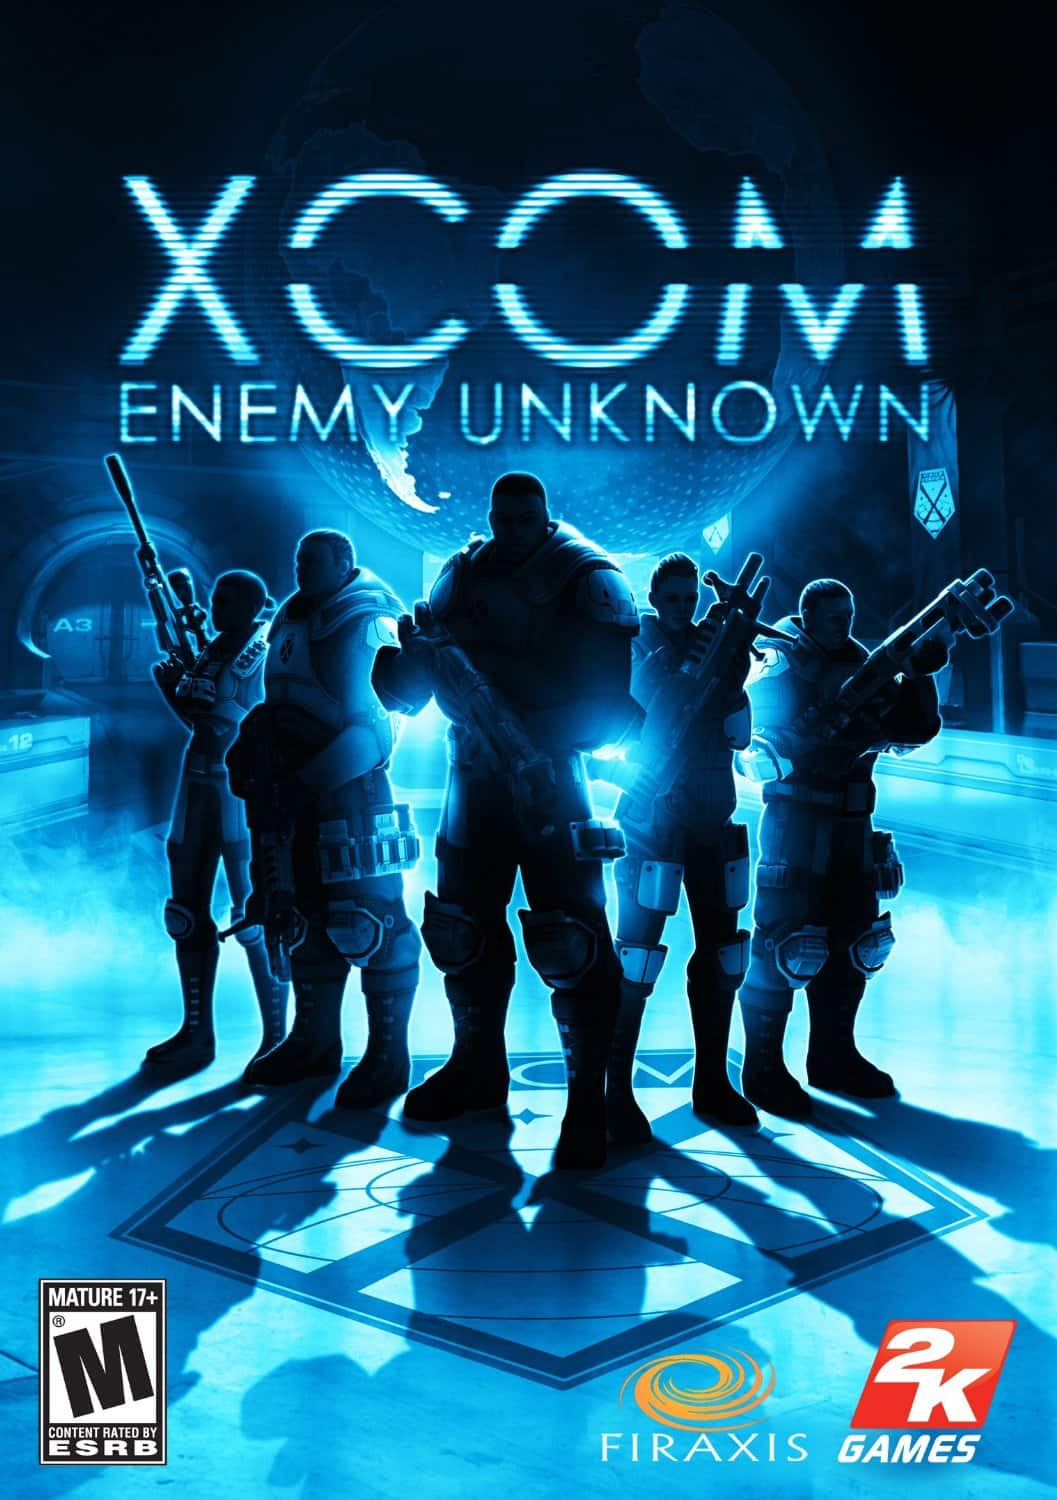 Free copy of XCOM: Enemy Unknown by voting for Golden Joystick Awards